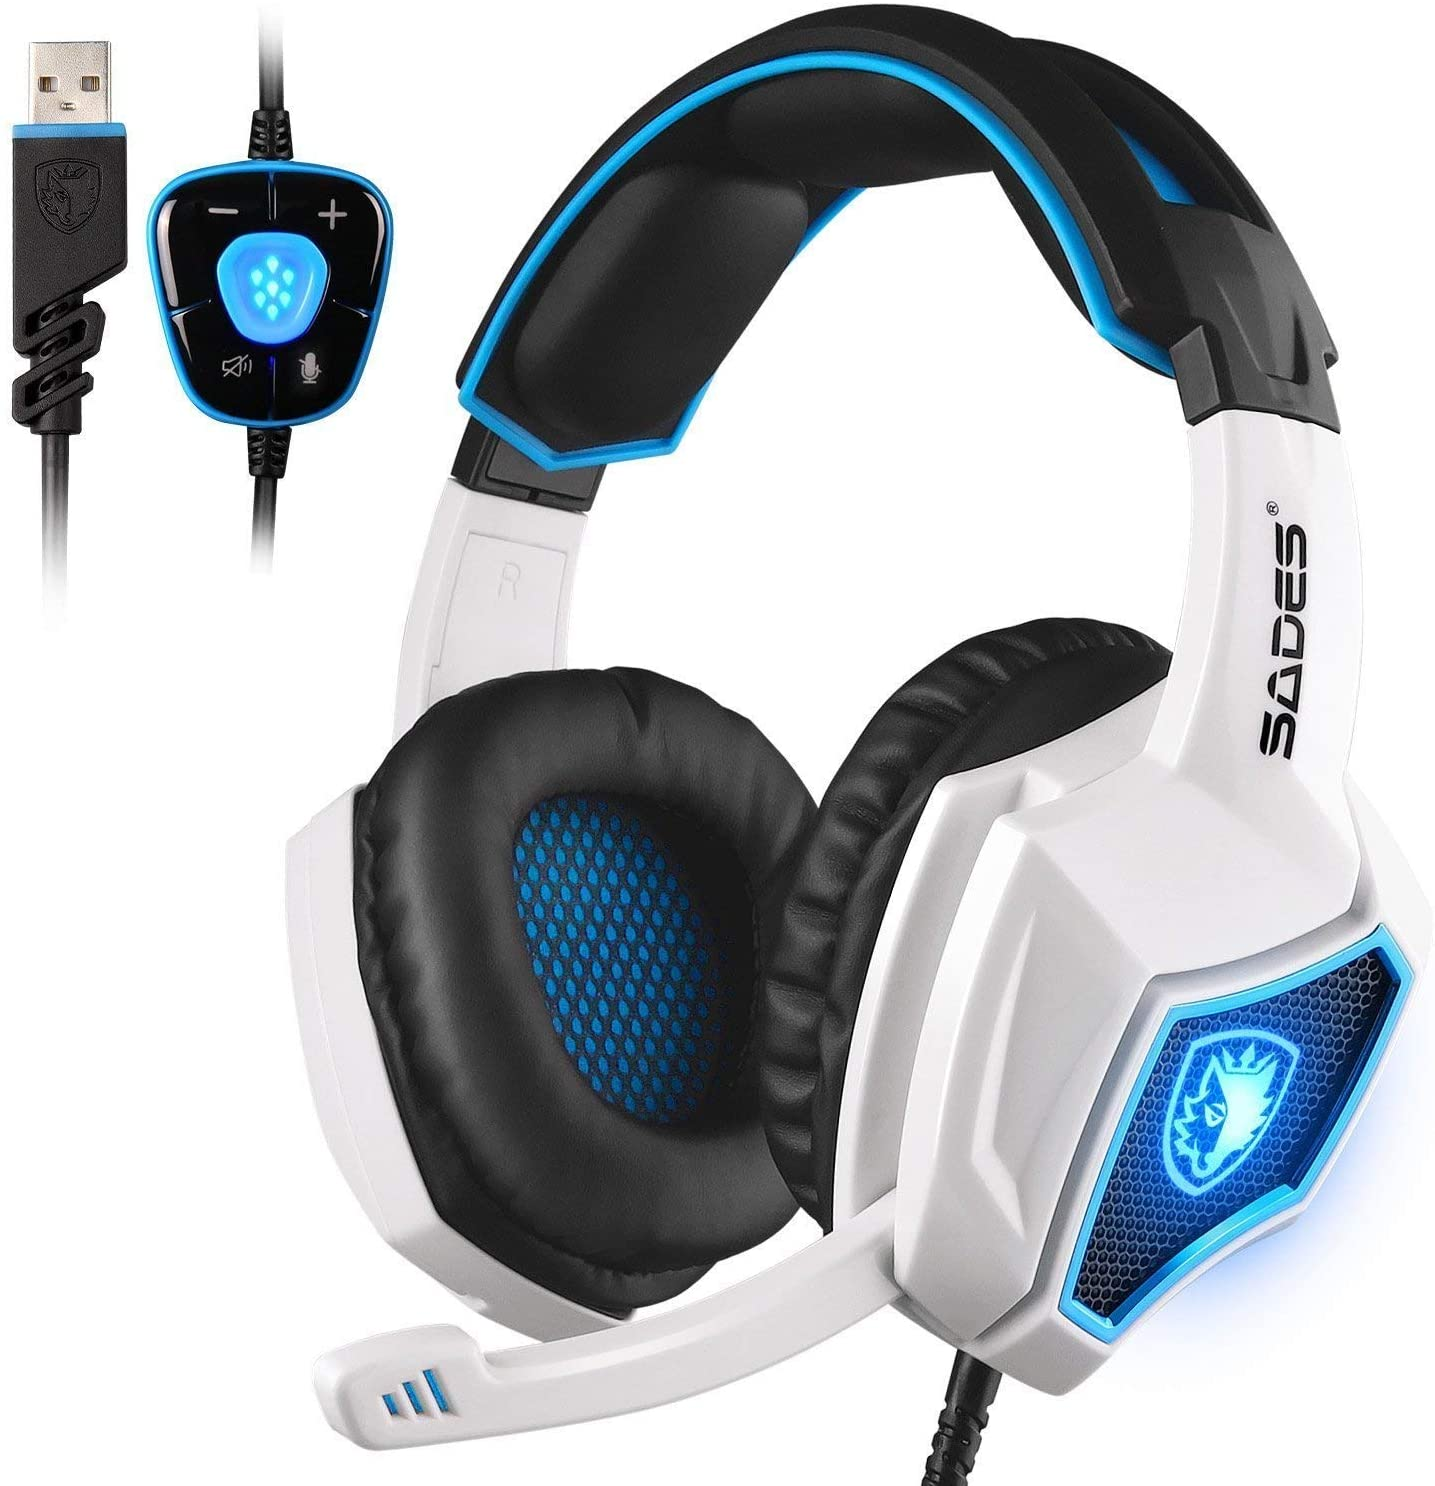 SADES Spirit Wolf USB 7.1 Computer Gaming Headset Wired Stereo Sound Headphone with Mic Volume Control LED Light for PC Gamers Black White